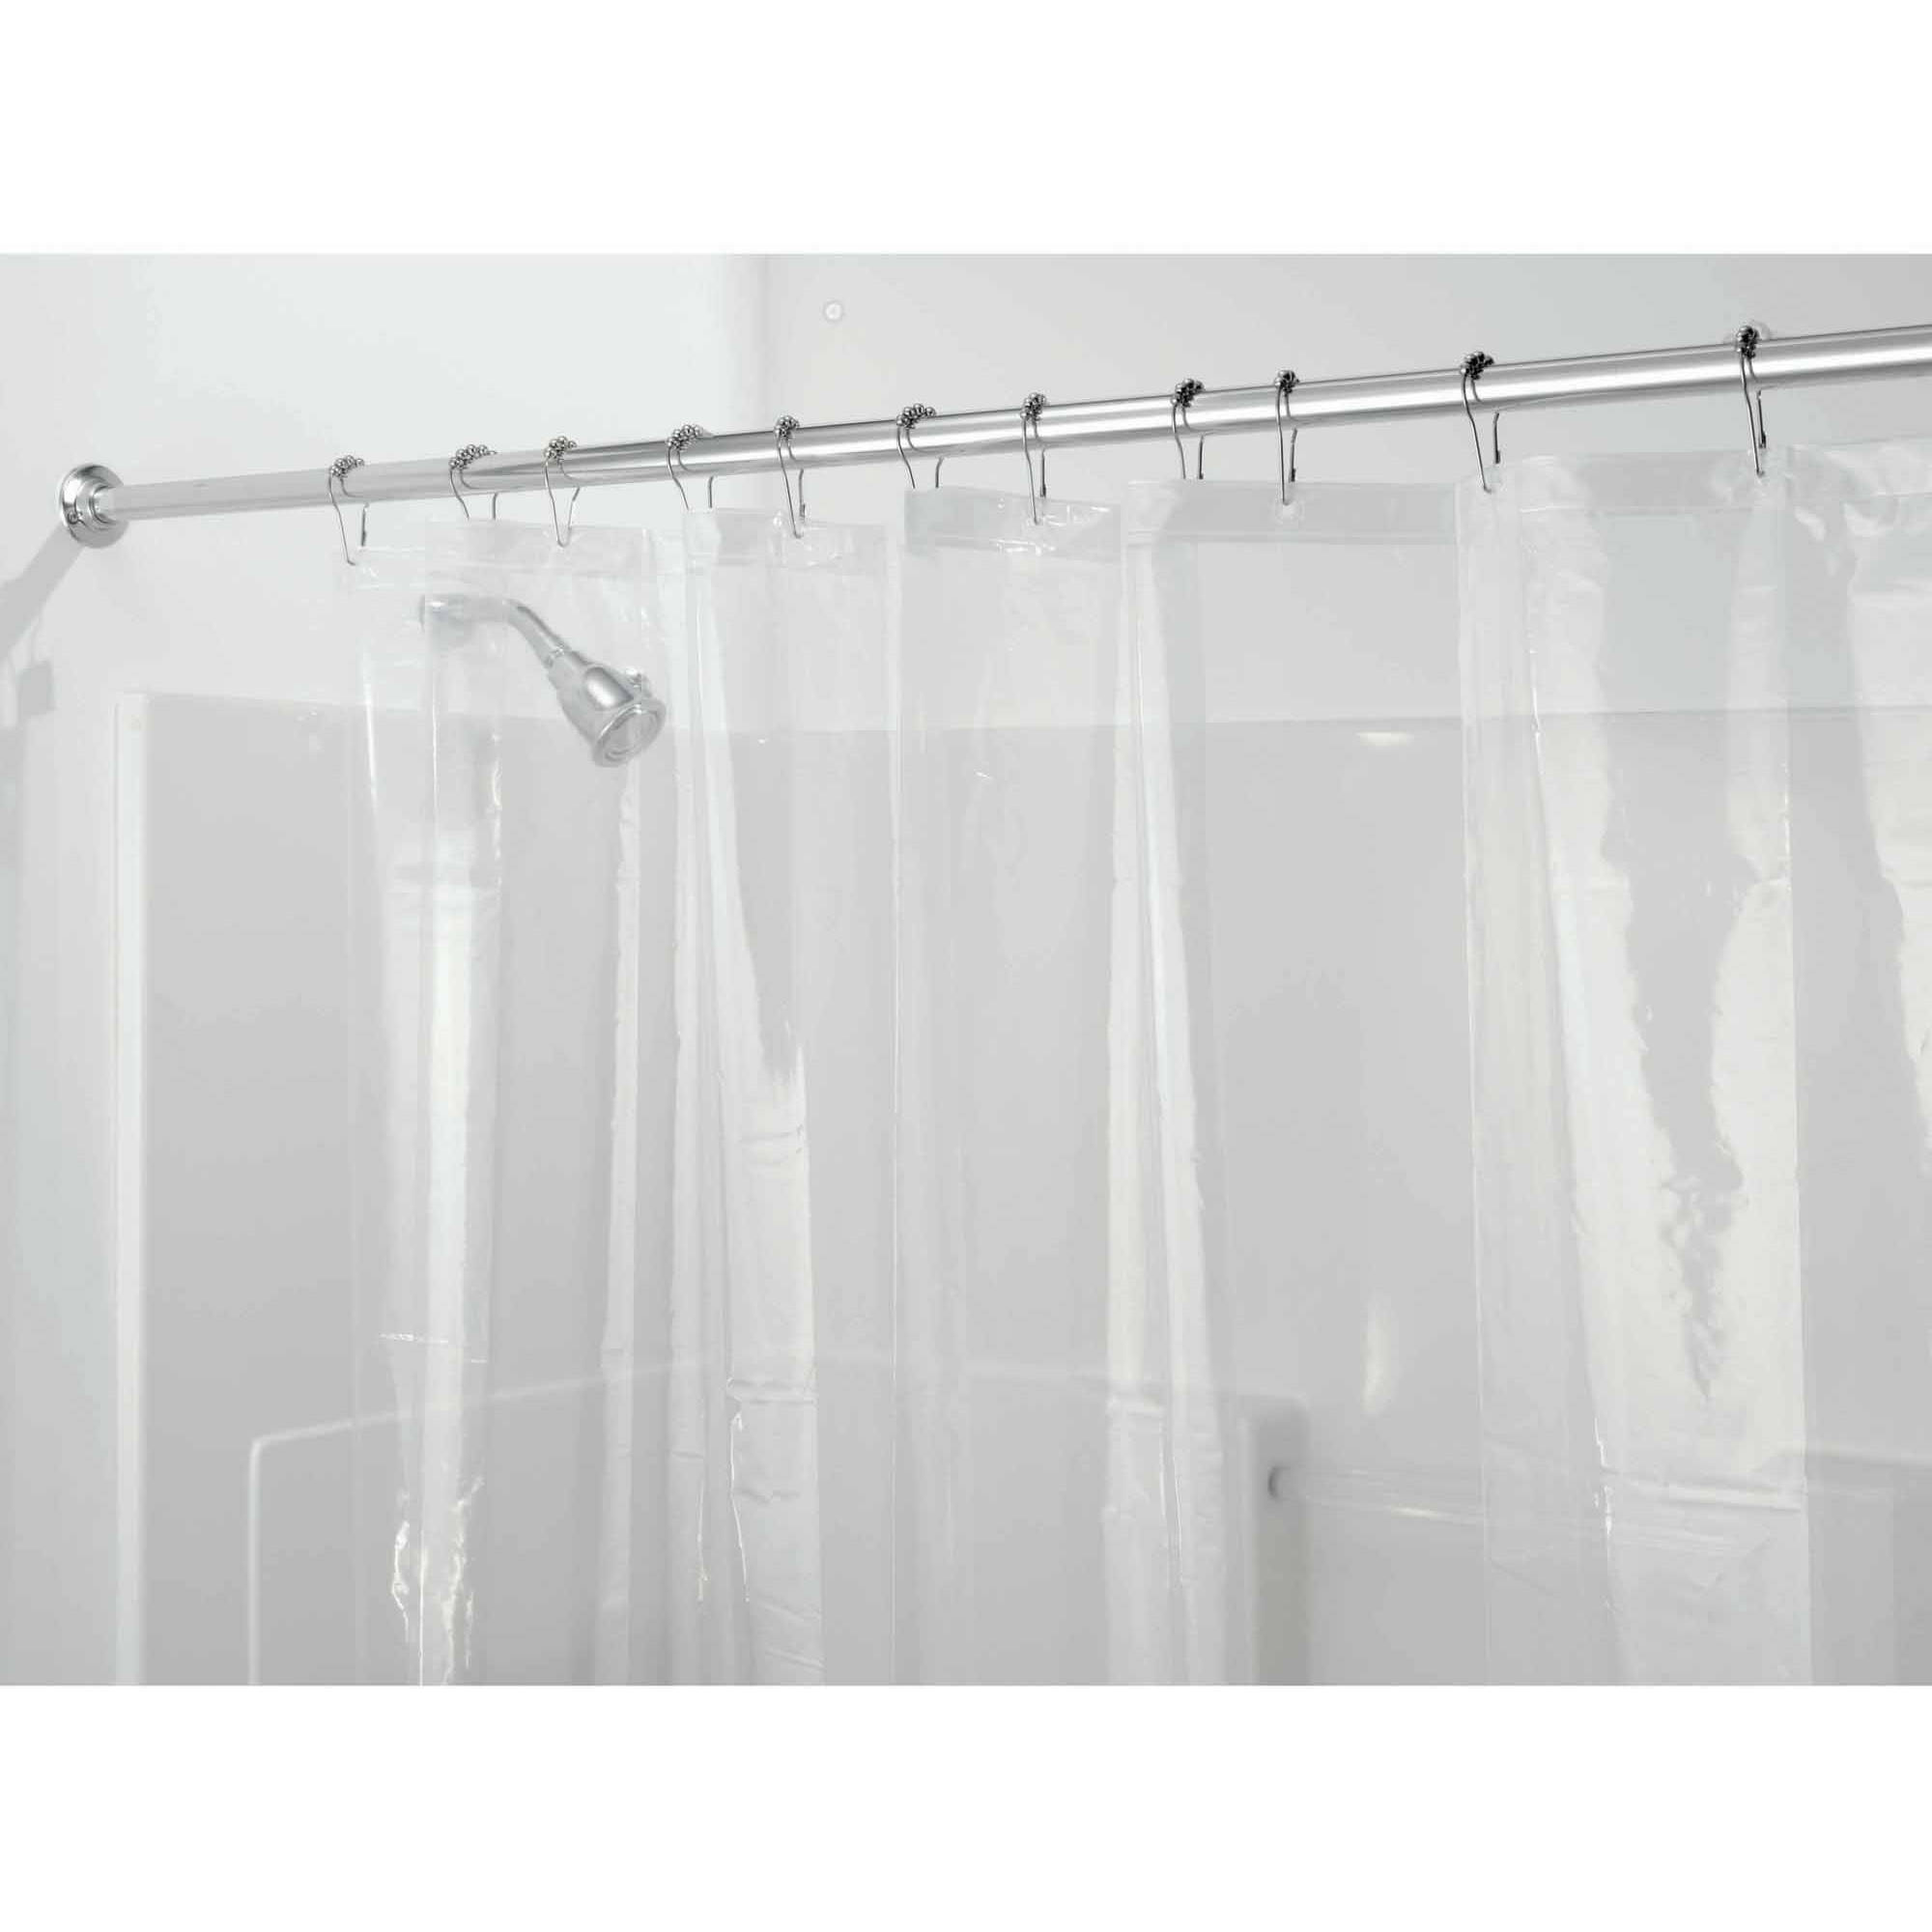 how to clean mildew from shower rack